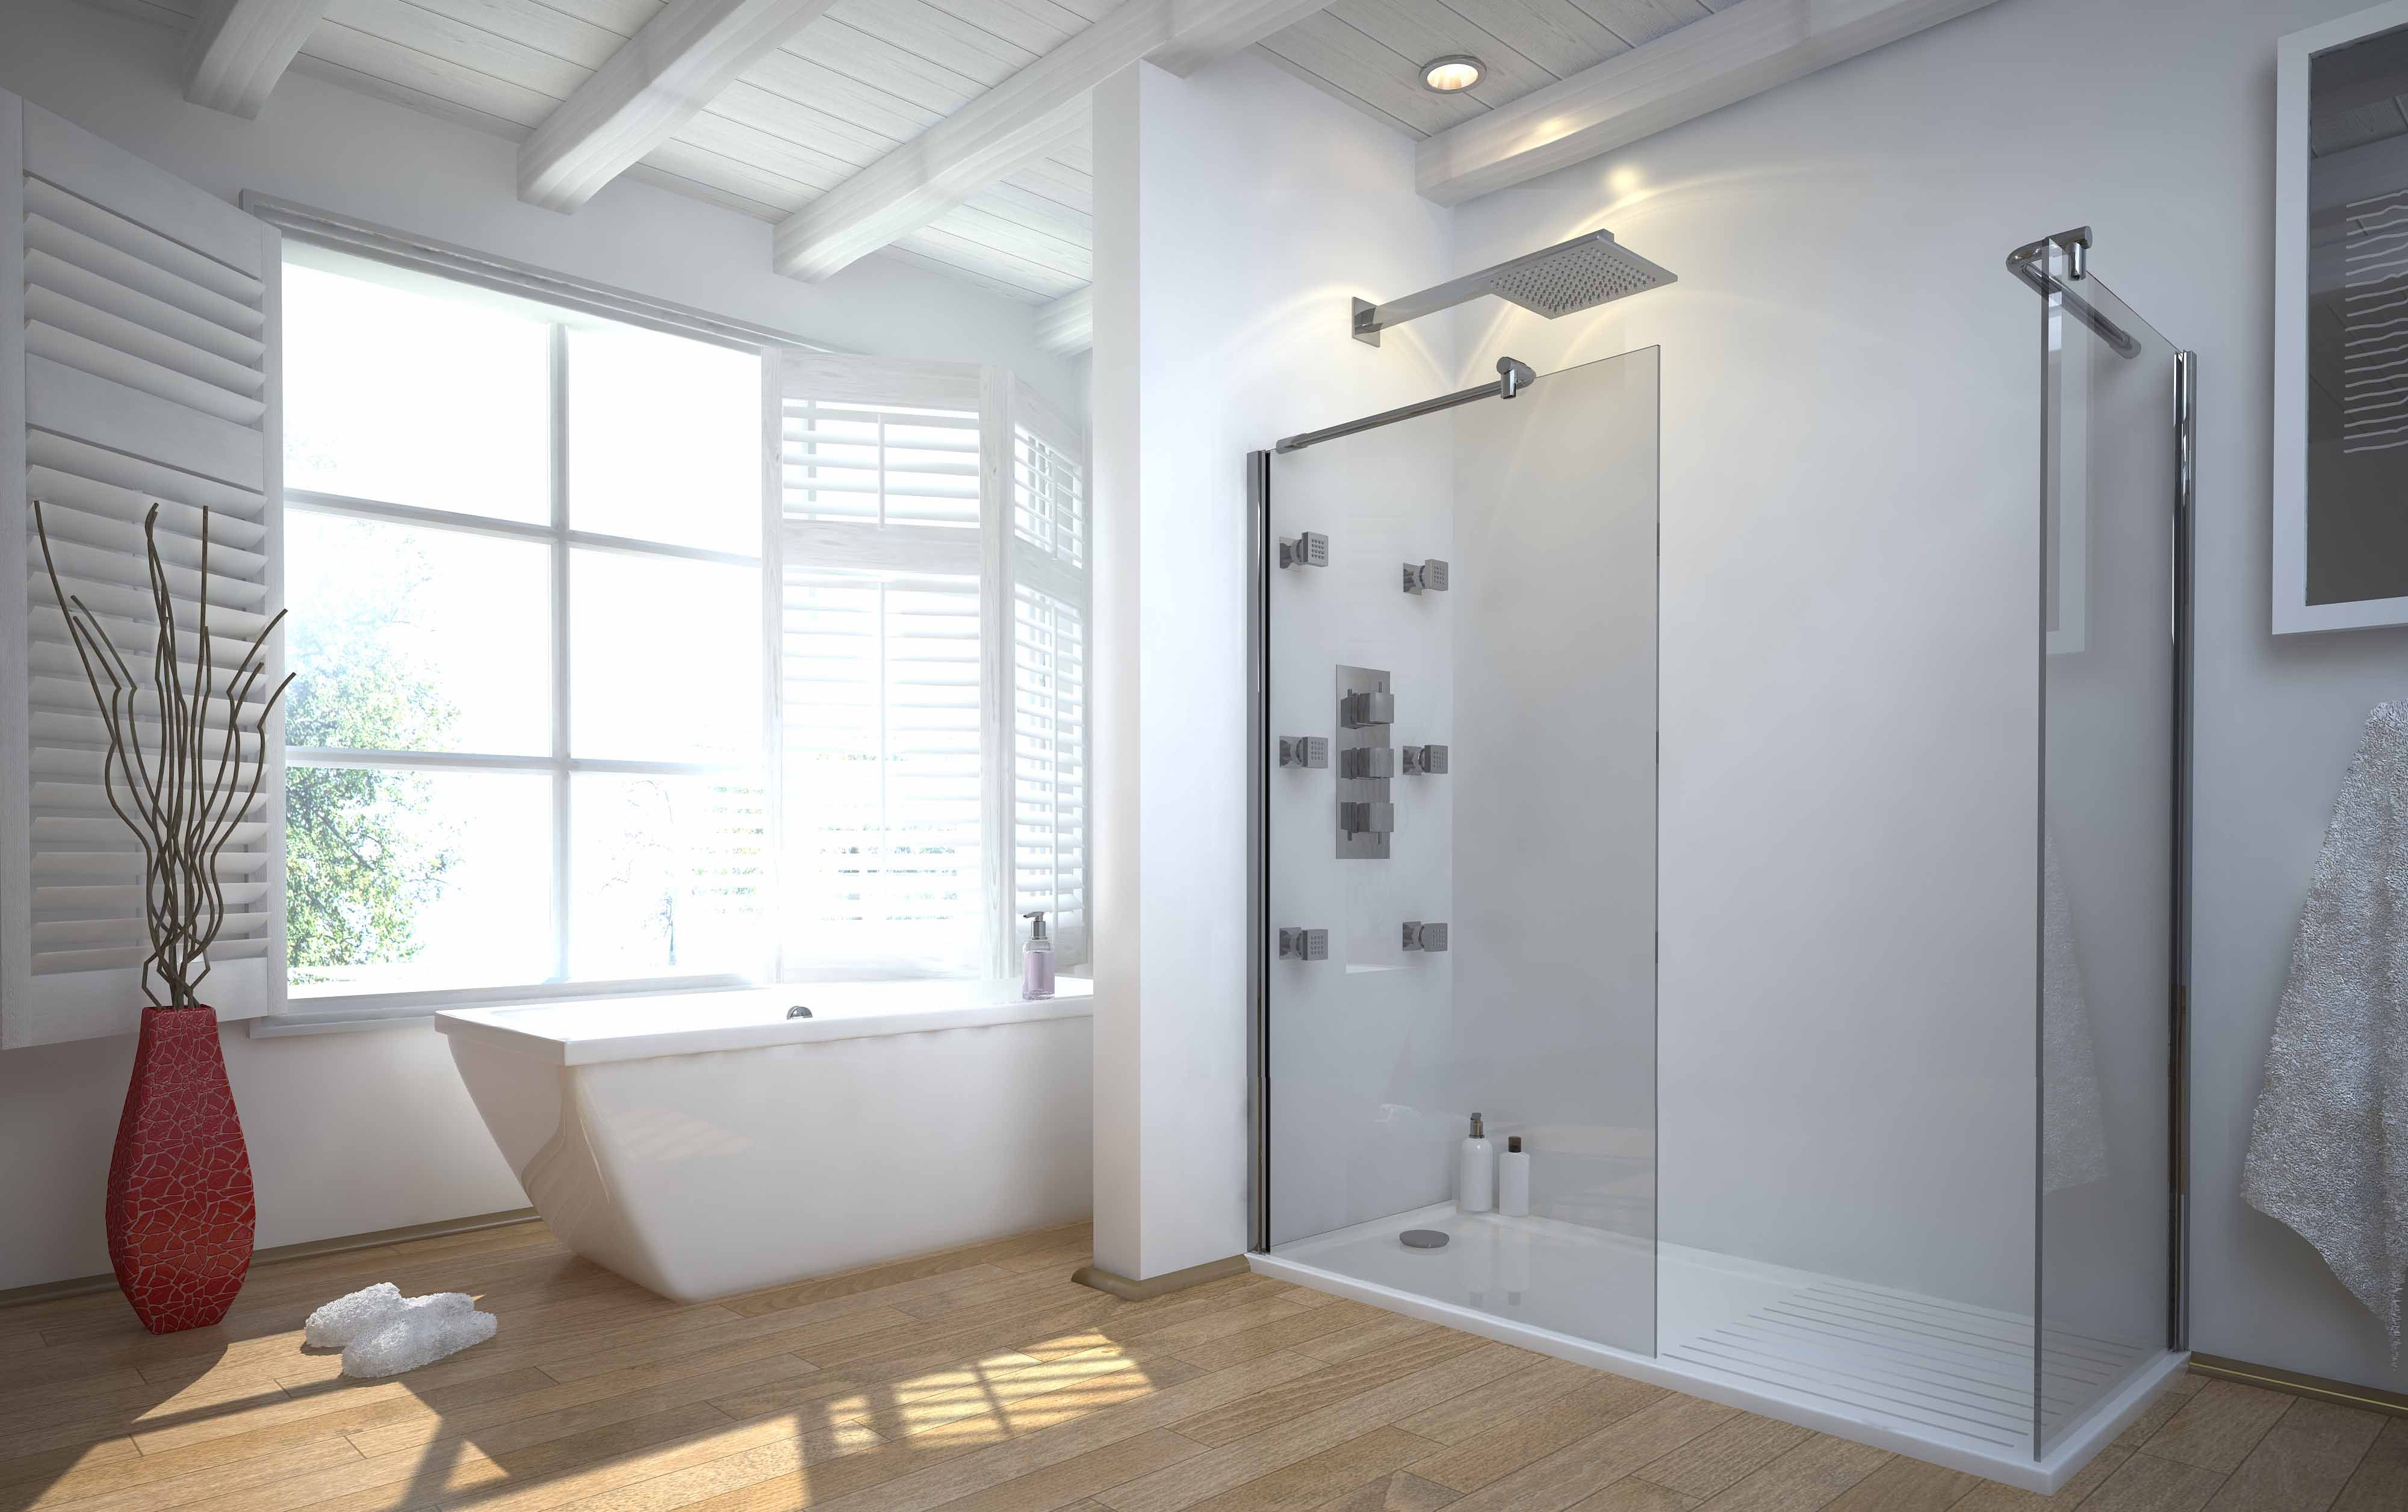 37 Bathrooms With Walk-In Showers | Flooring installation, Wooden ...